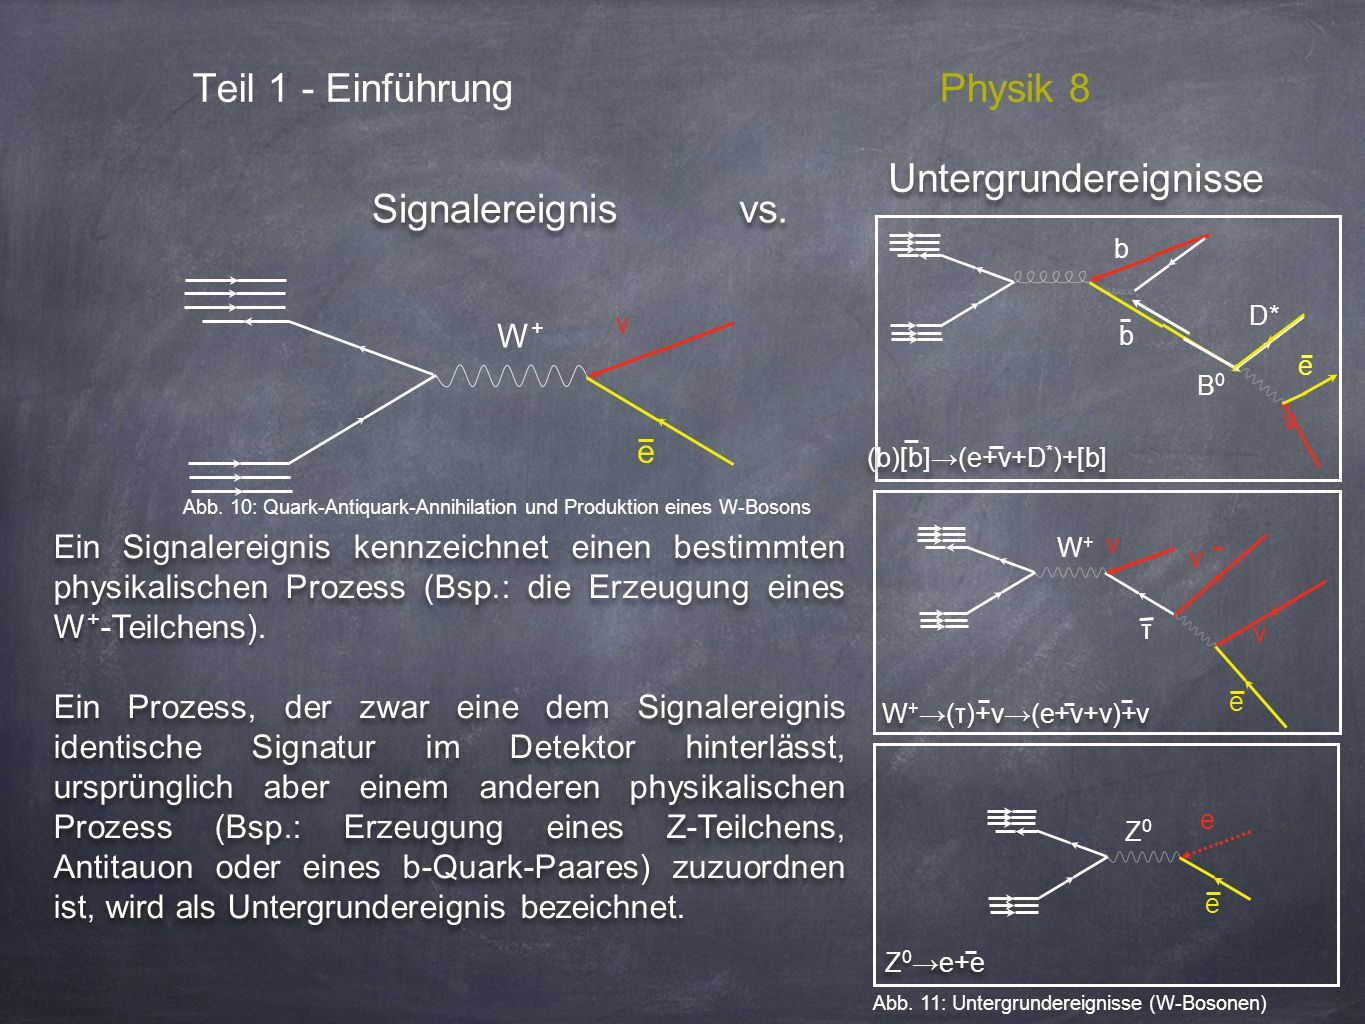 Teil 1 - EinführungPhysik 8 animation, video, pictures of annihilation and pair production from cosmic rays W + (τ)+ν(e+ν+ν)+ν W+W+ ν Z0Z0 e Z 0 e+e e